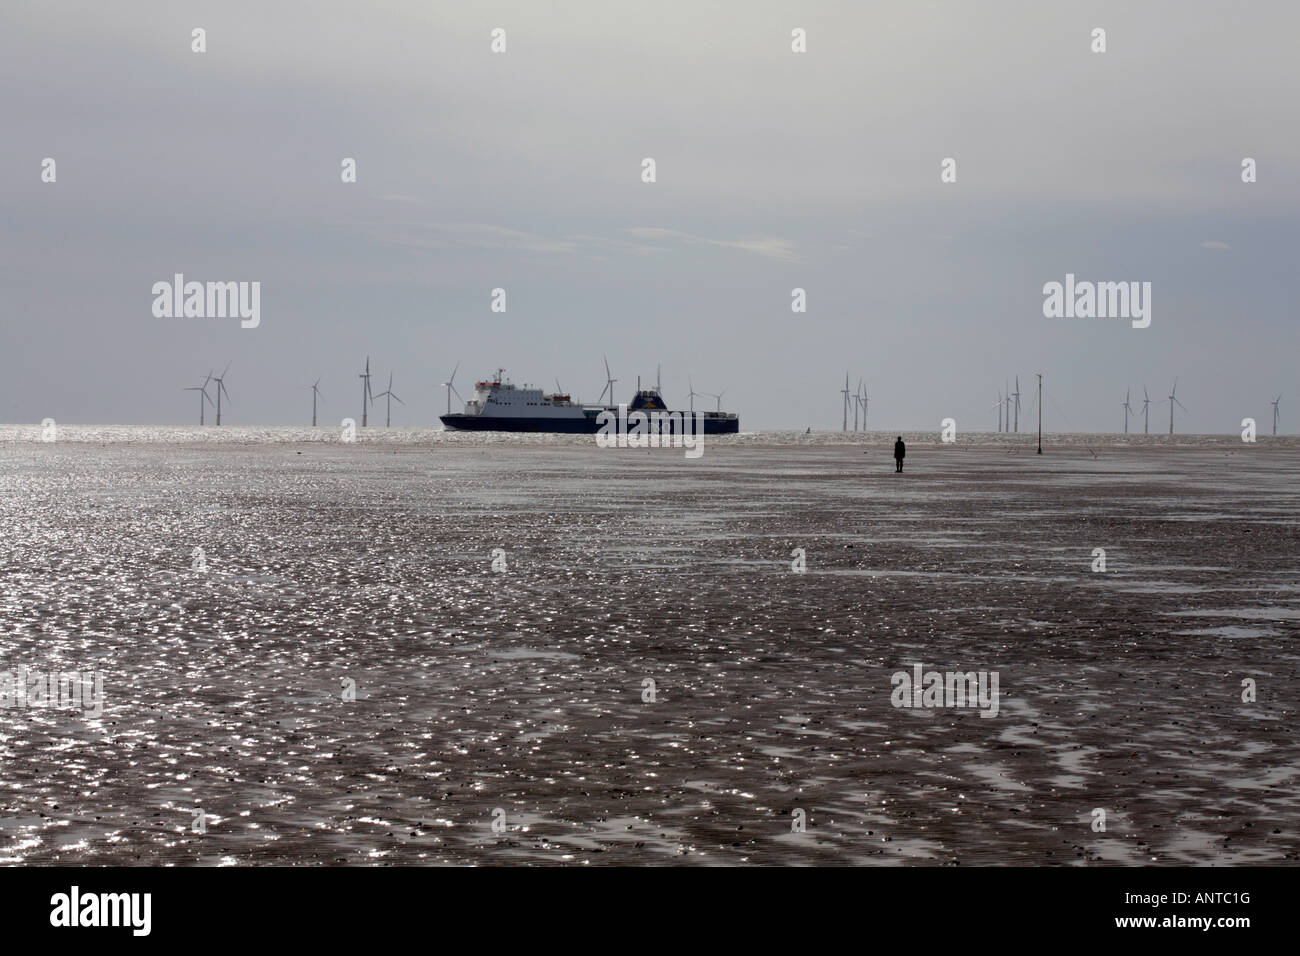 Ferry sailing past  Another Place figure sculptures on the beach by Anthony Gormley at Crosby Liverpool England - Stock Image